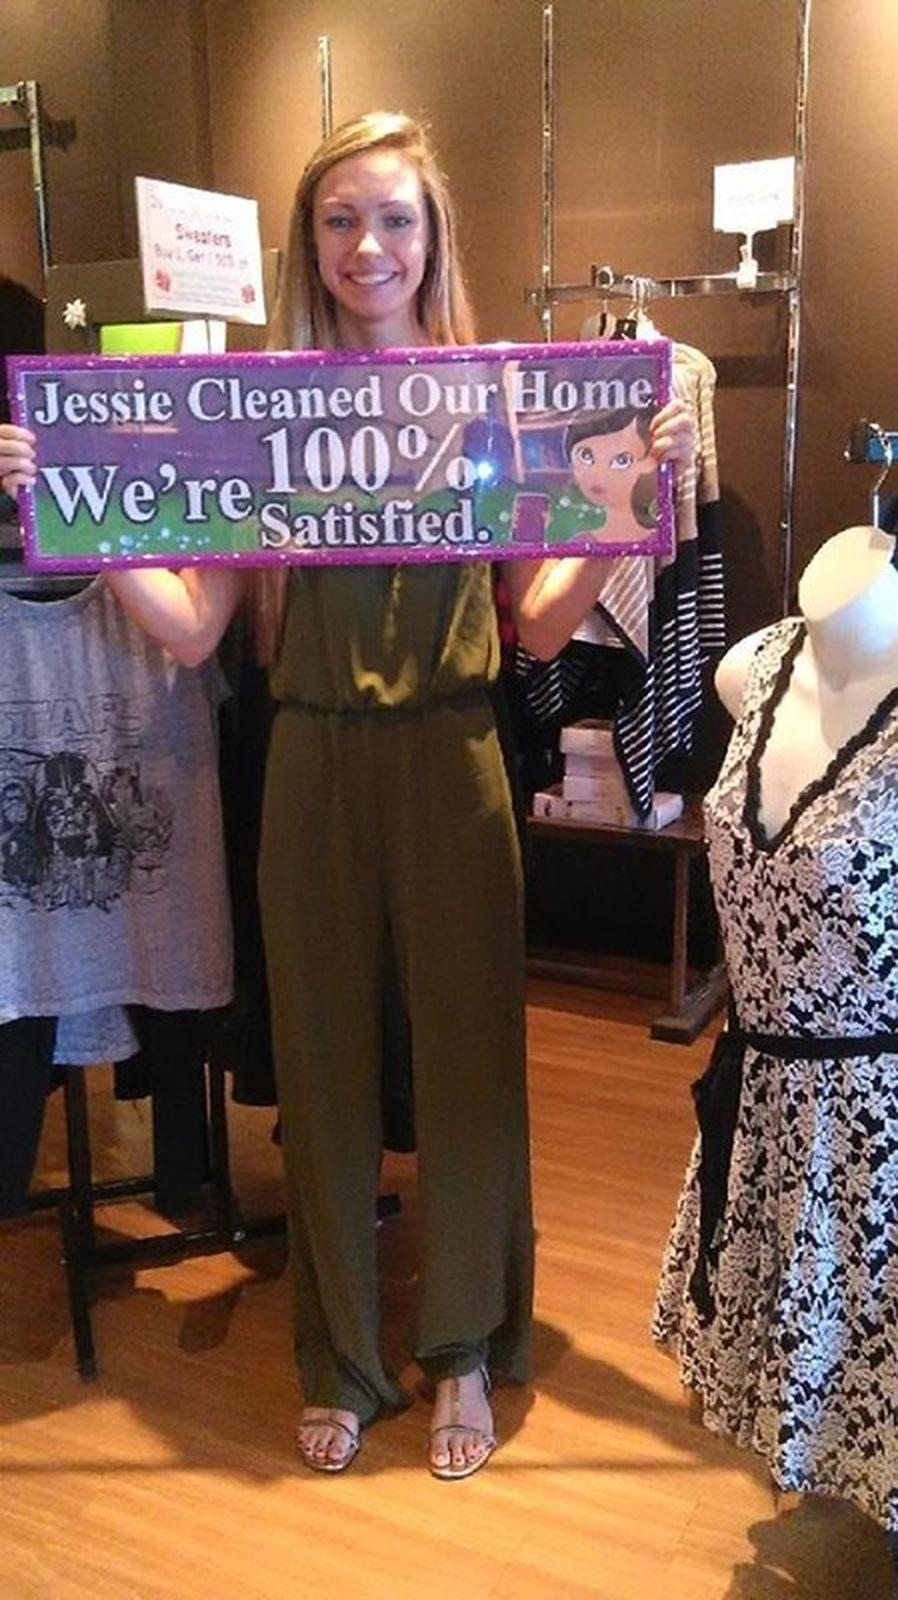 ponte vedra beach house cleaning services by jessies house & carpet cleaning 1.877.CLEANING JESSIESHOUSECLEANING.COM  100% SATISFIED CUSTOMER